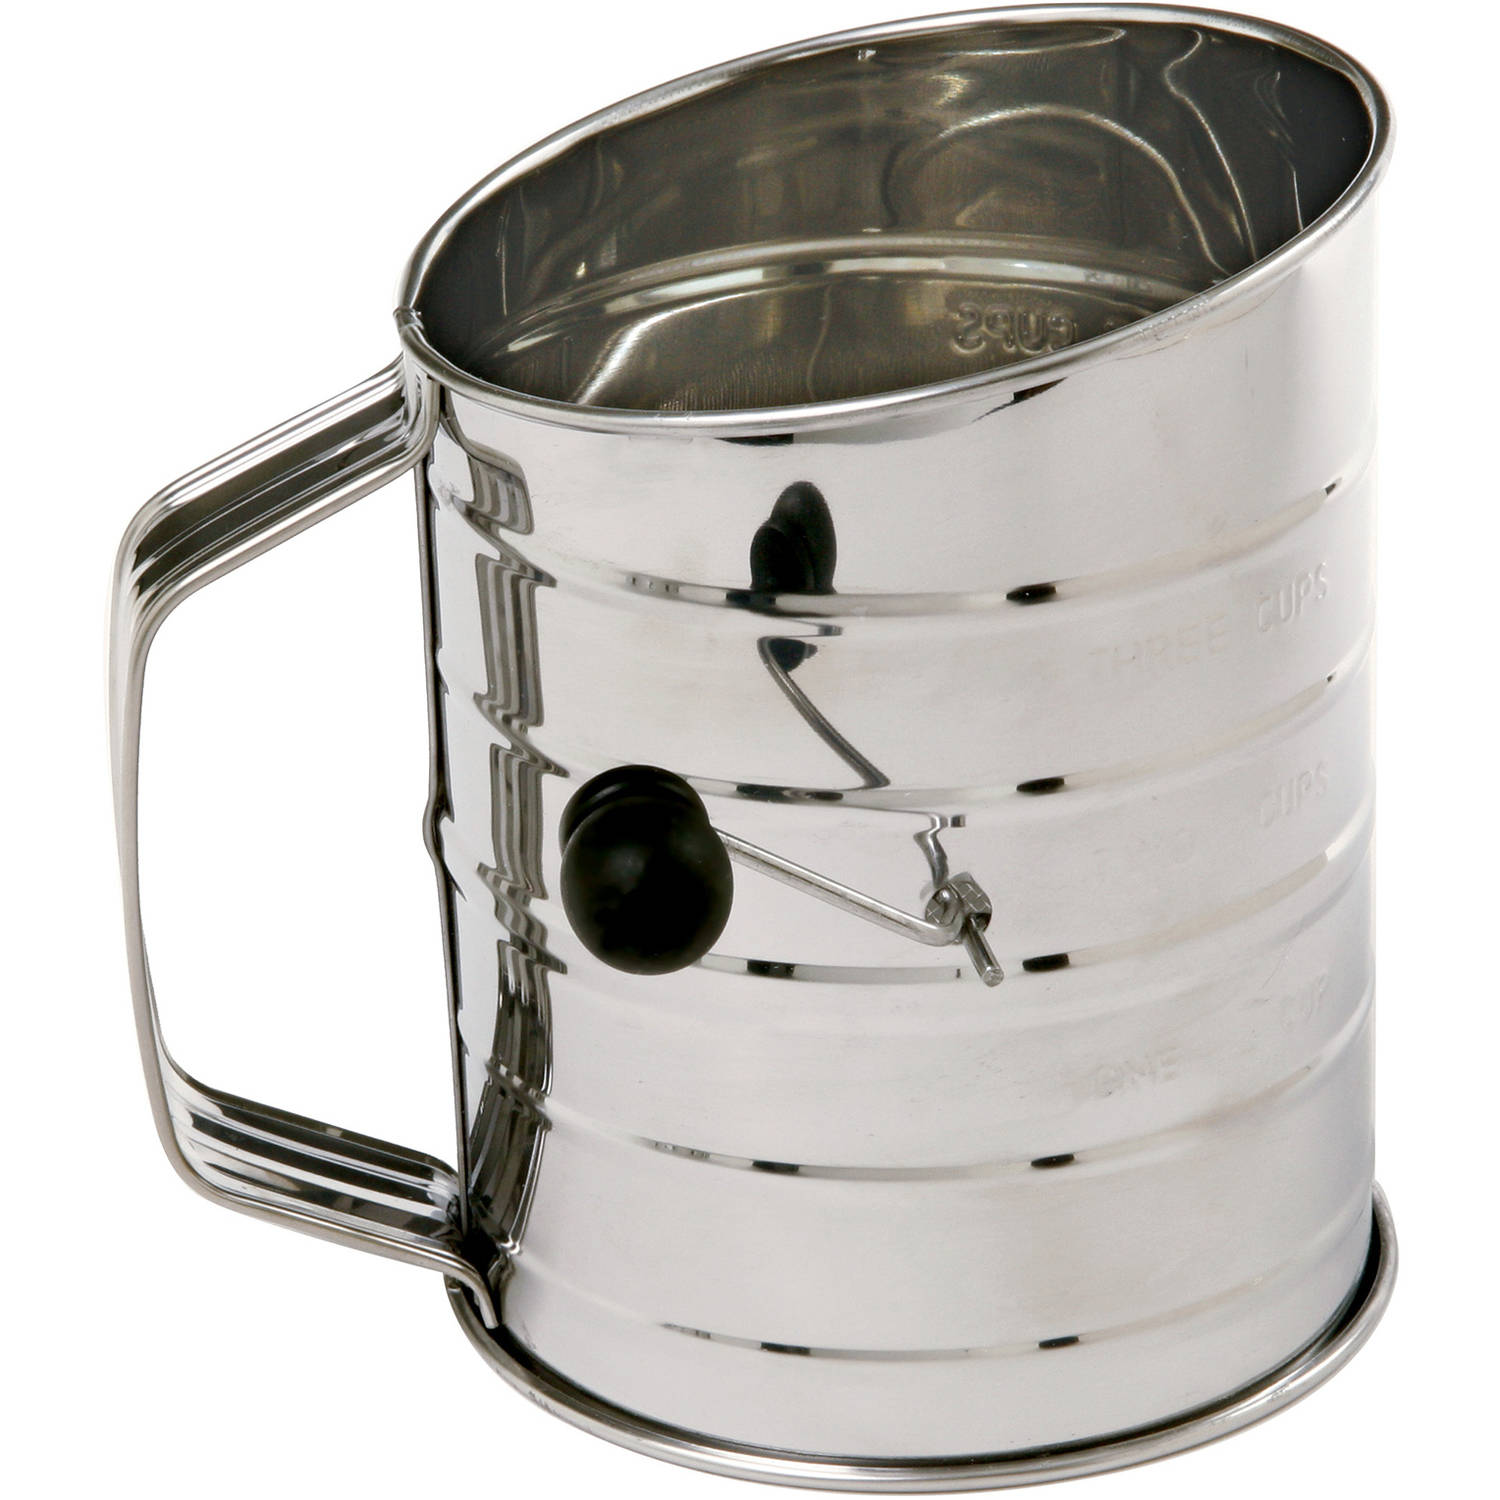 Norpro #136 3-Cup Stainless Steel Flour Sifter by Norpro